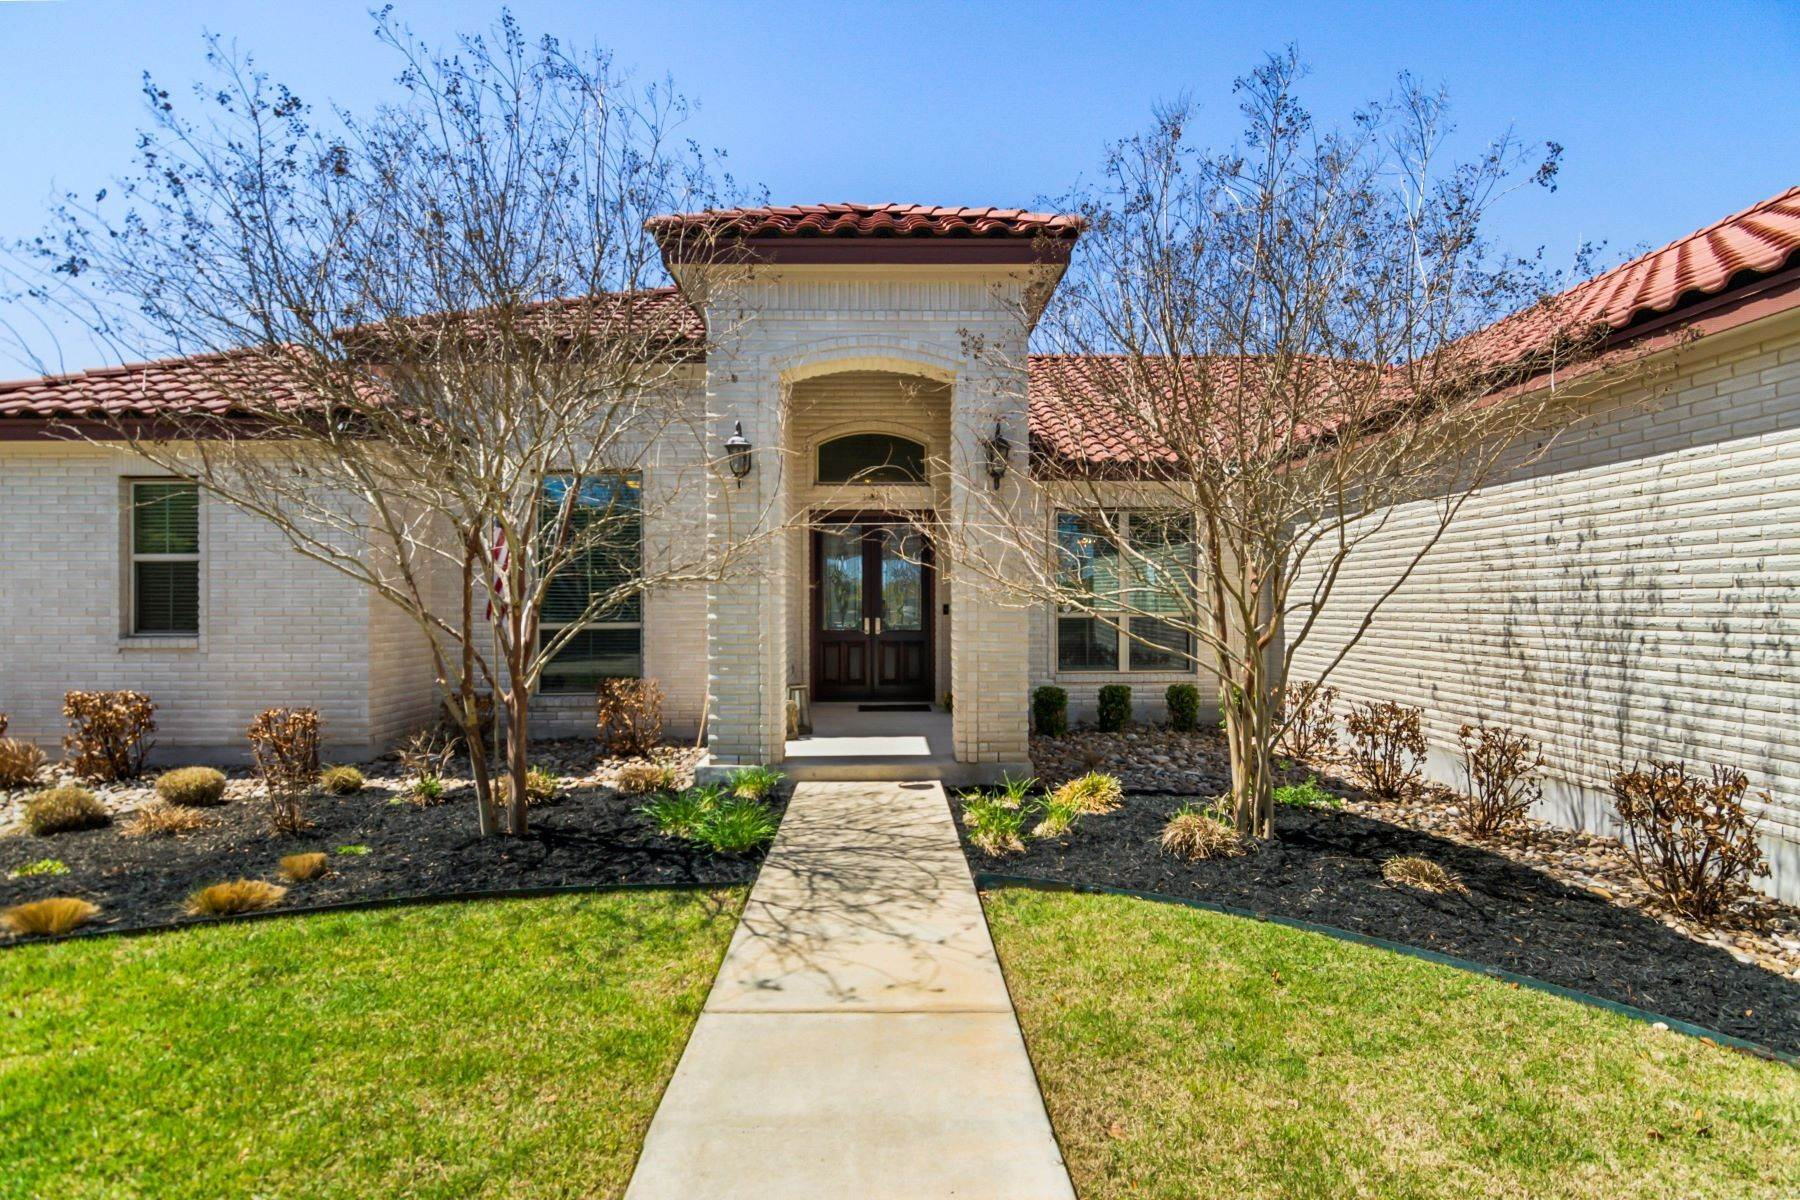 Property for Sale at Remarkable One-Story Home 22813 East Range San Antonio, Texas 78255 United States